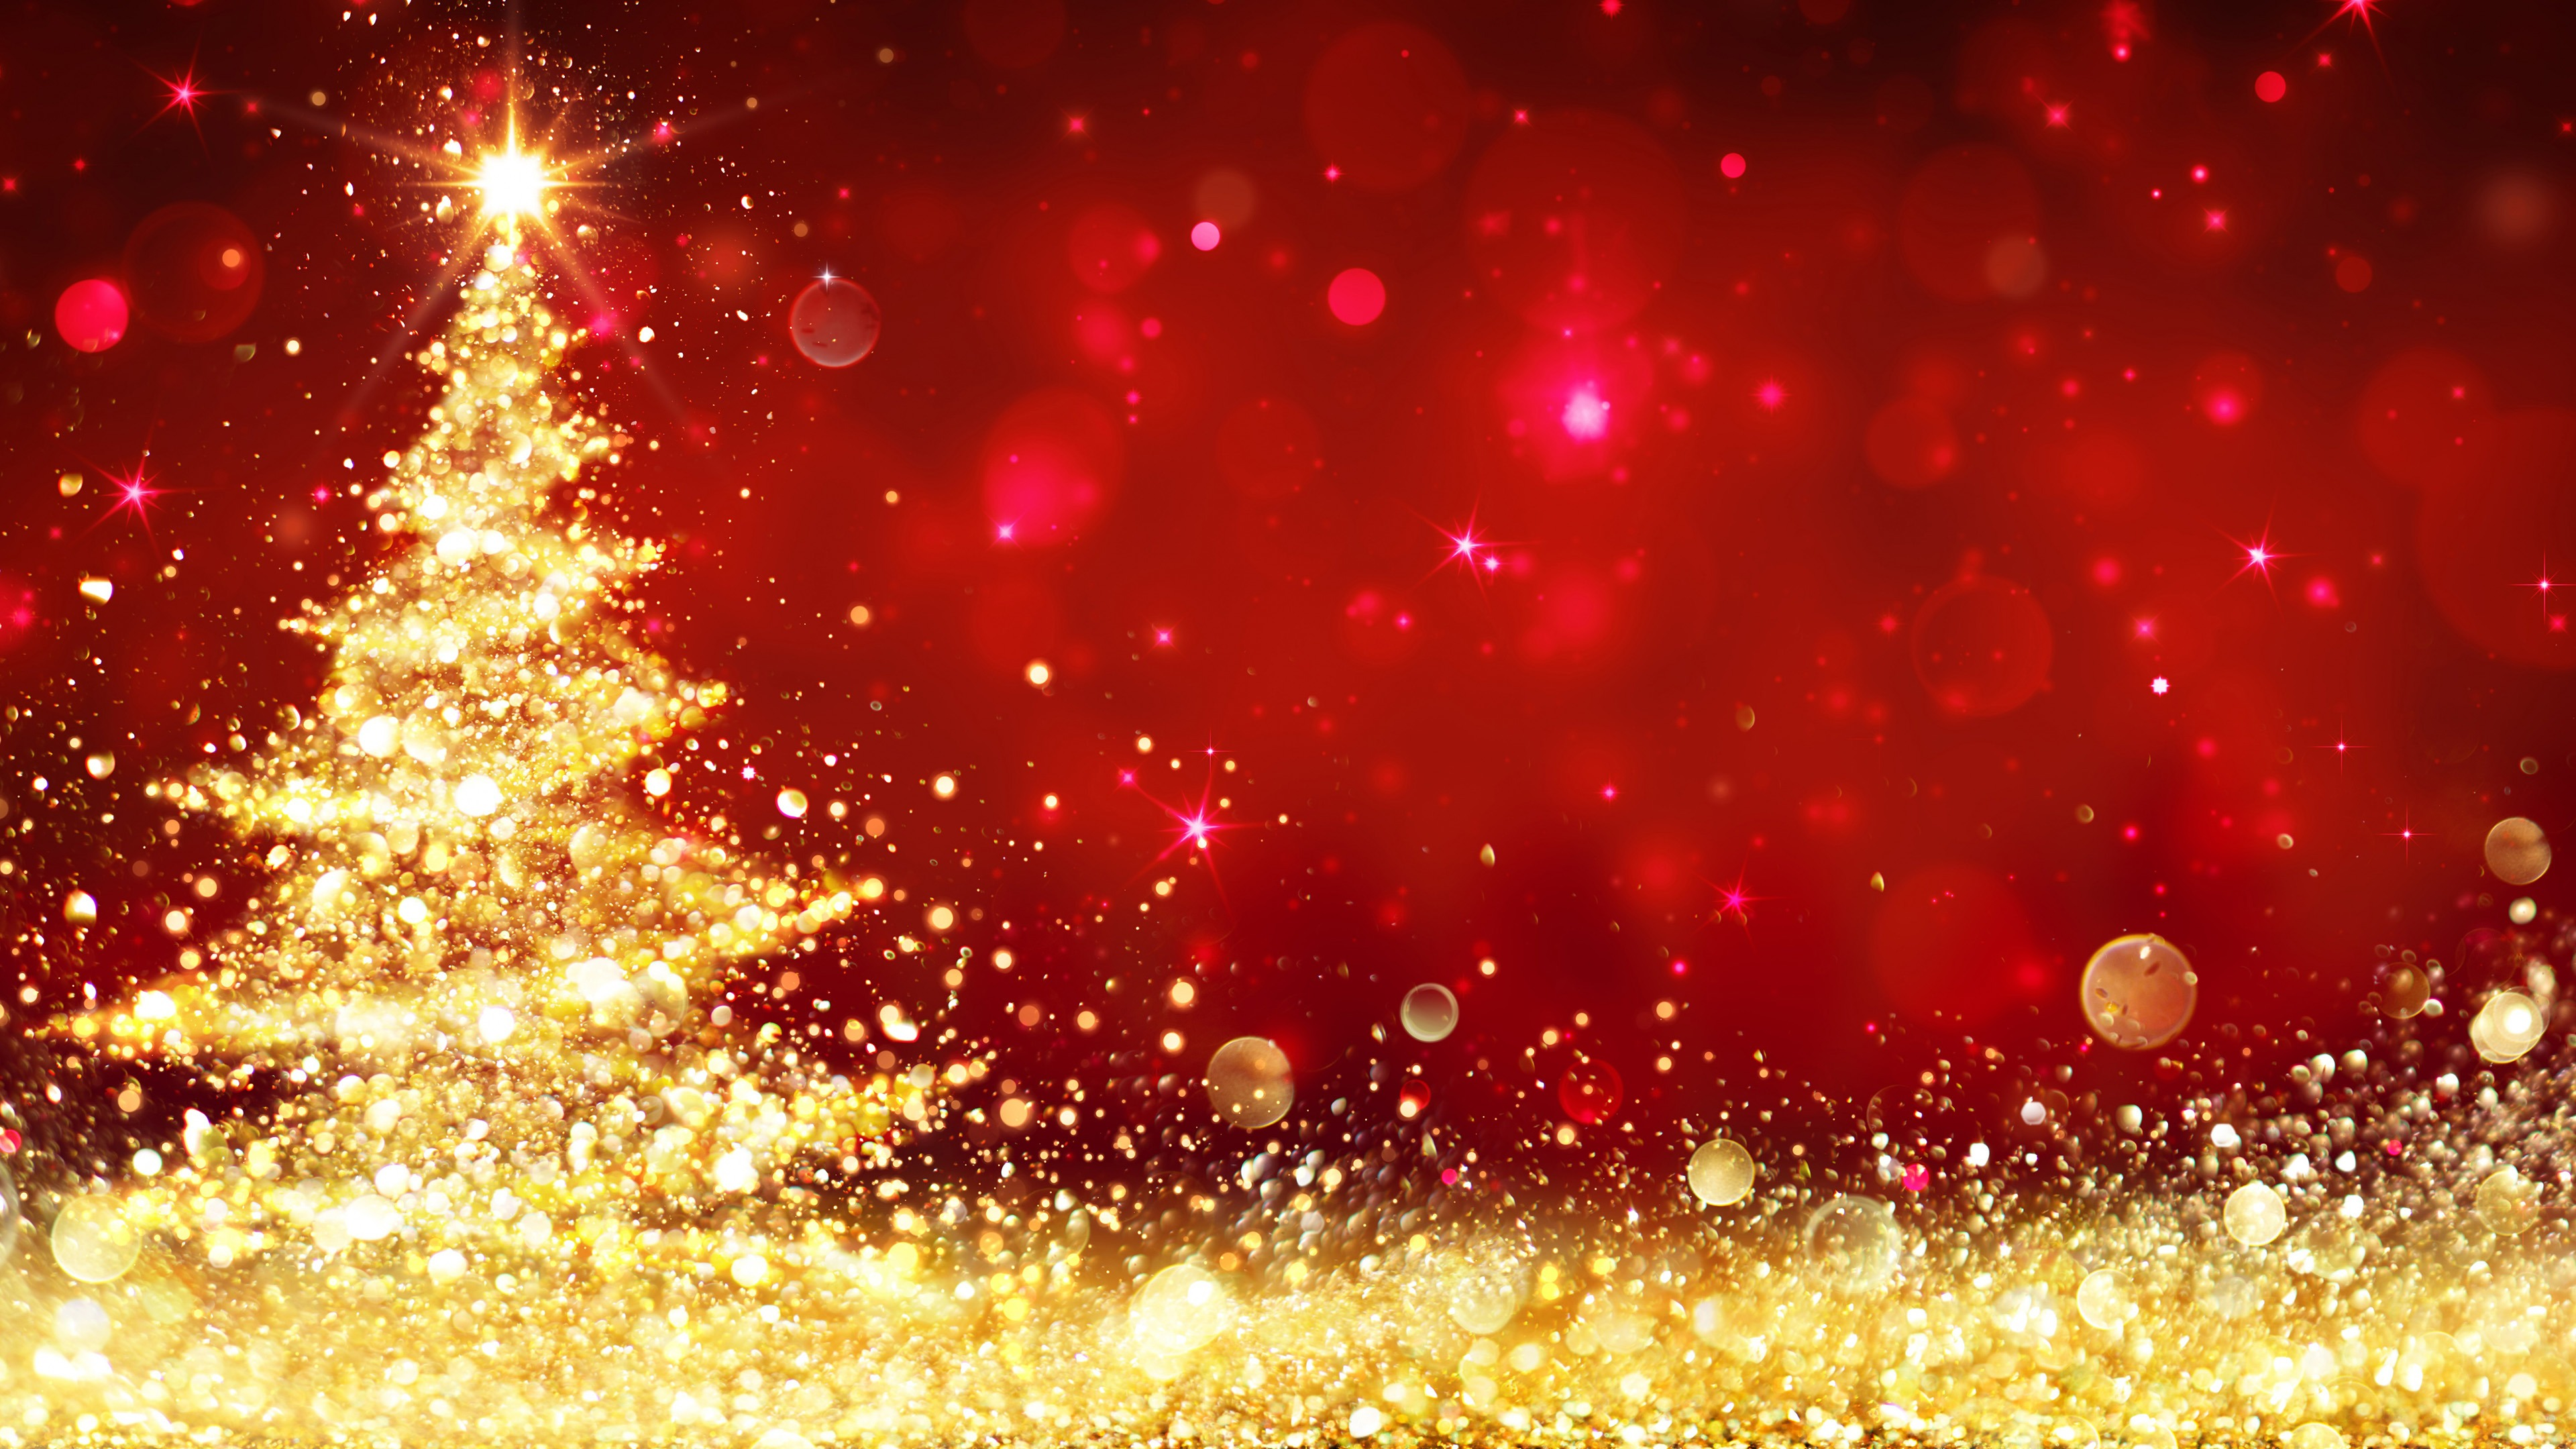 Merry Christmas 4K Desktop HD Wallpaper Background